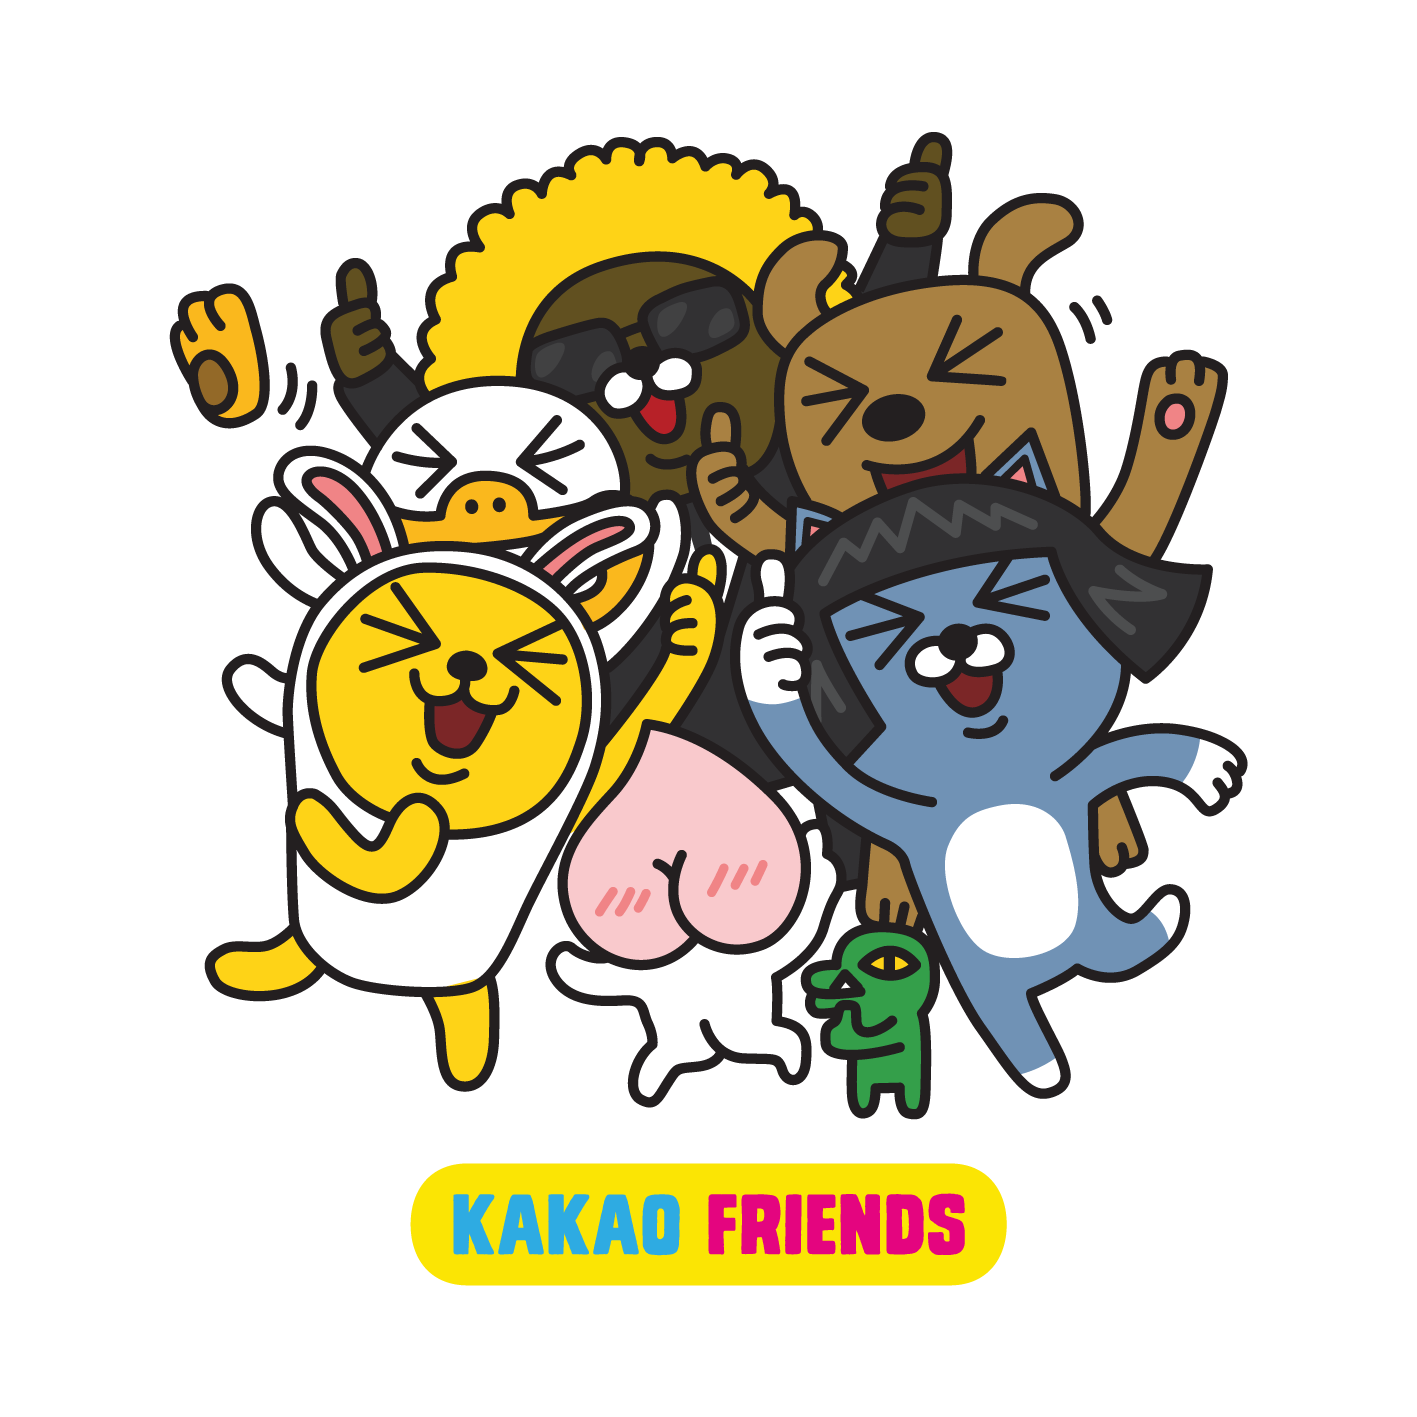 Kakao friends png. Happy kakaotalk with just